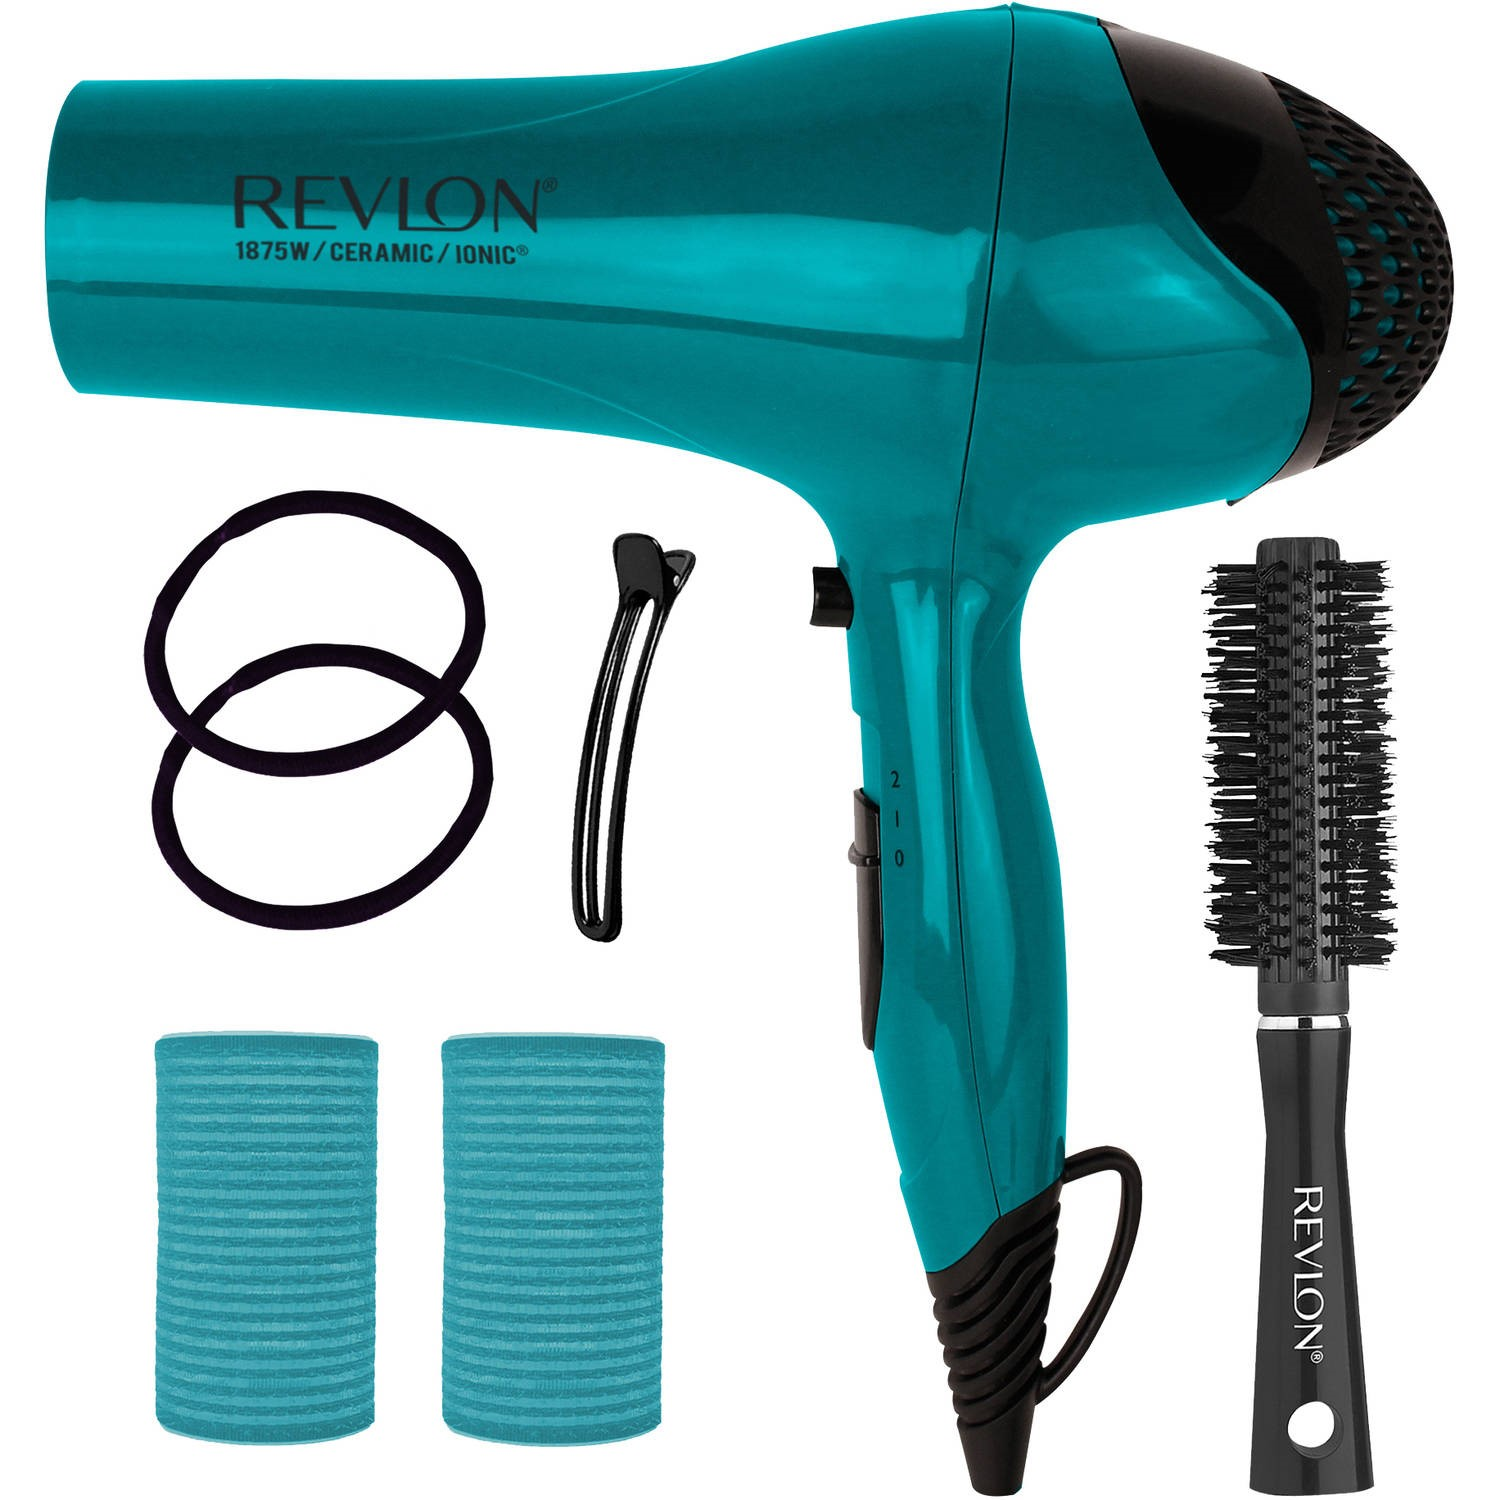 Revlon IONIC Ceramic Hair Dryer Blowout Gift Set, Teal, 7 pc